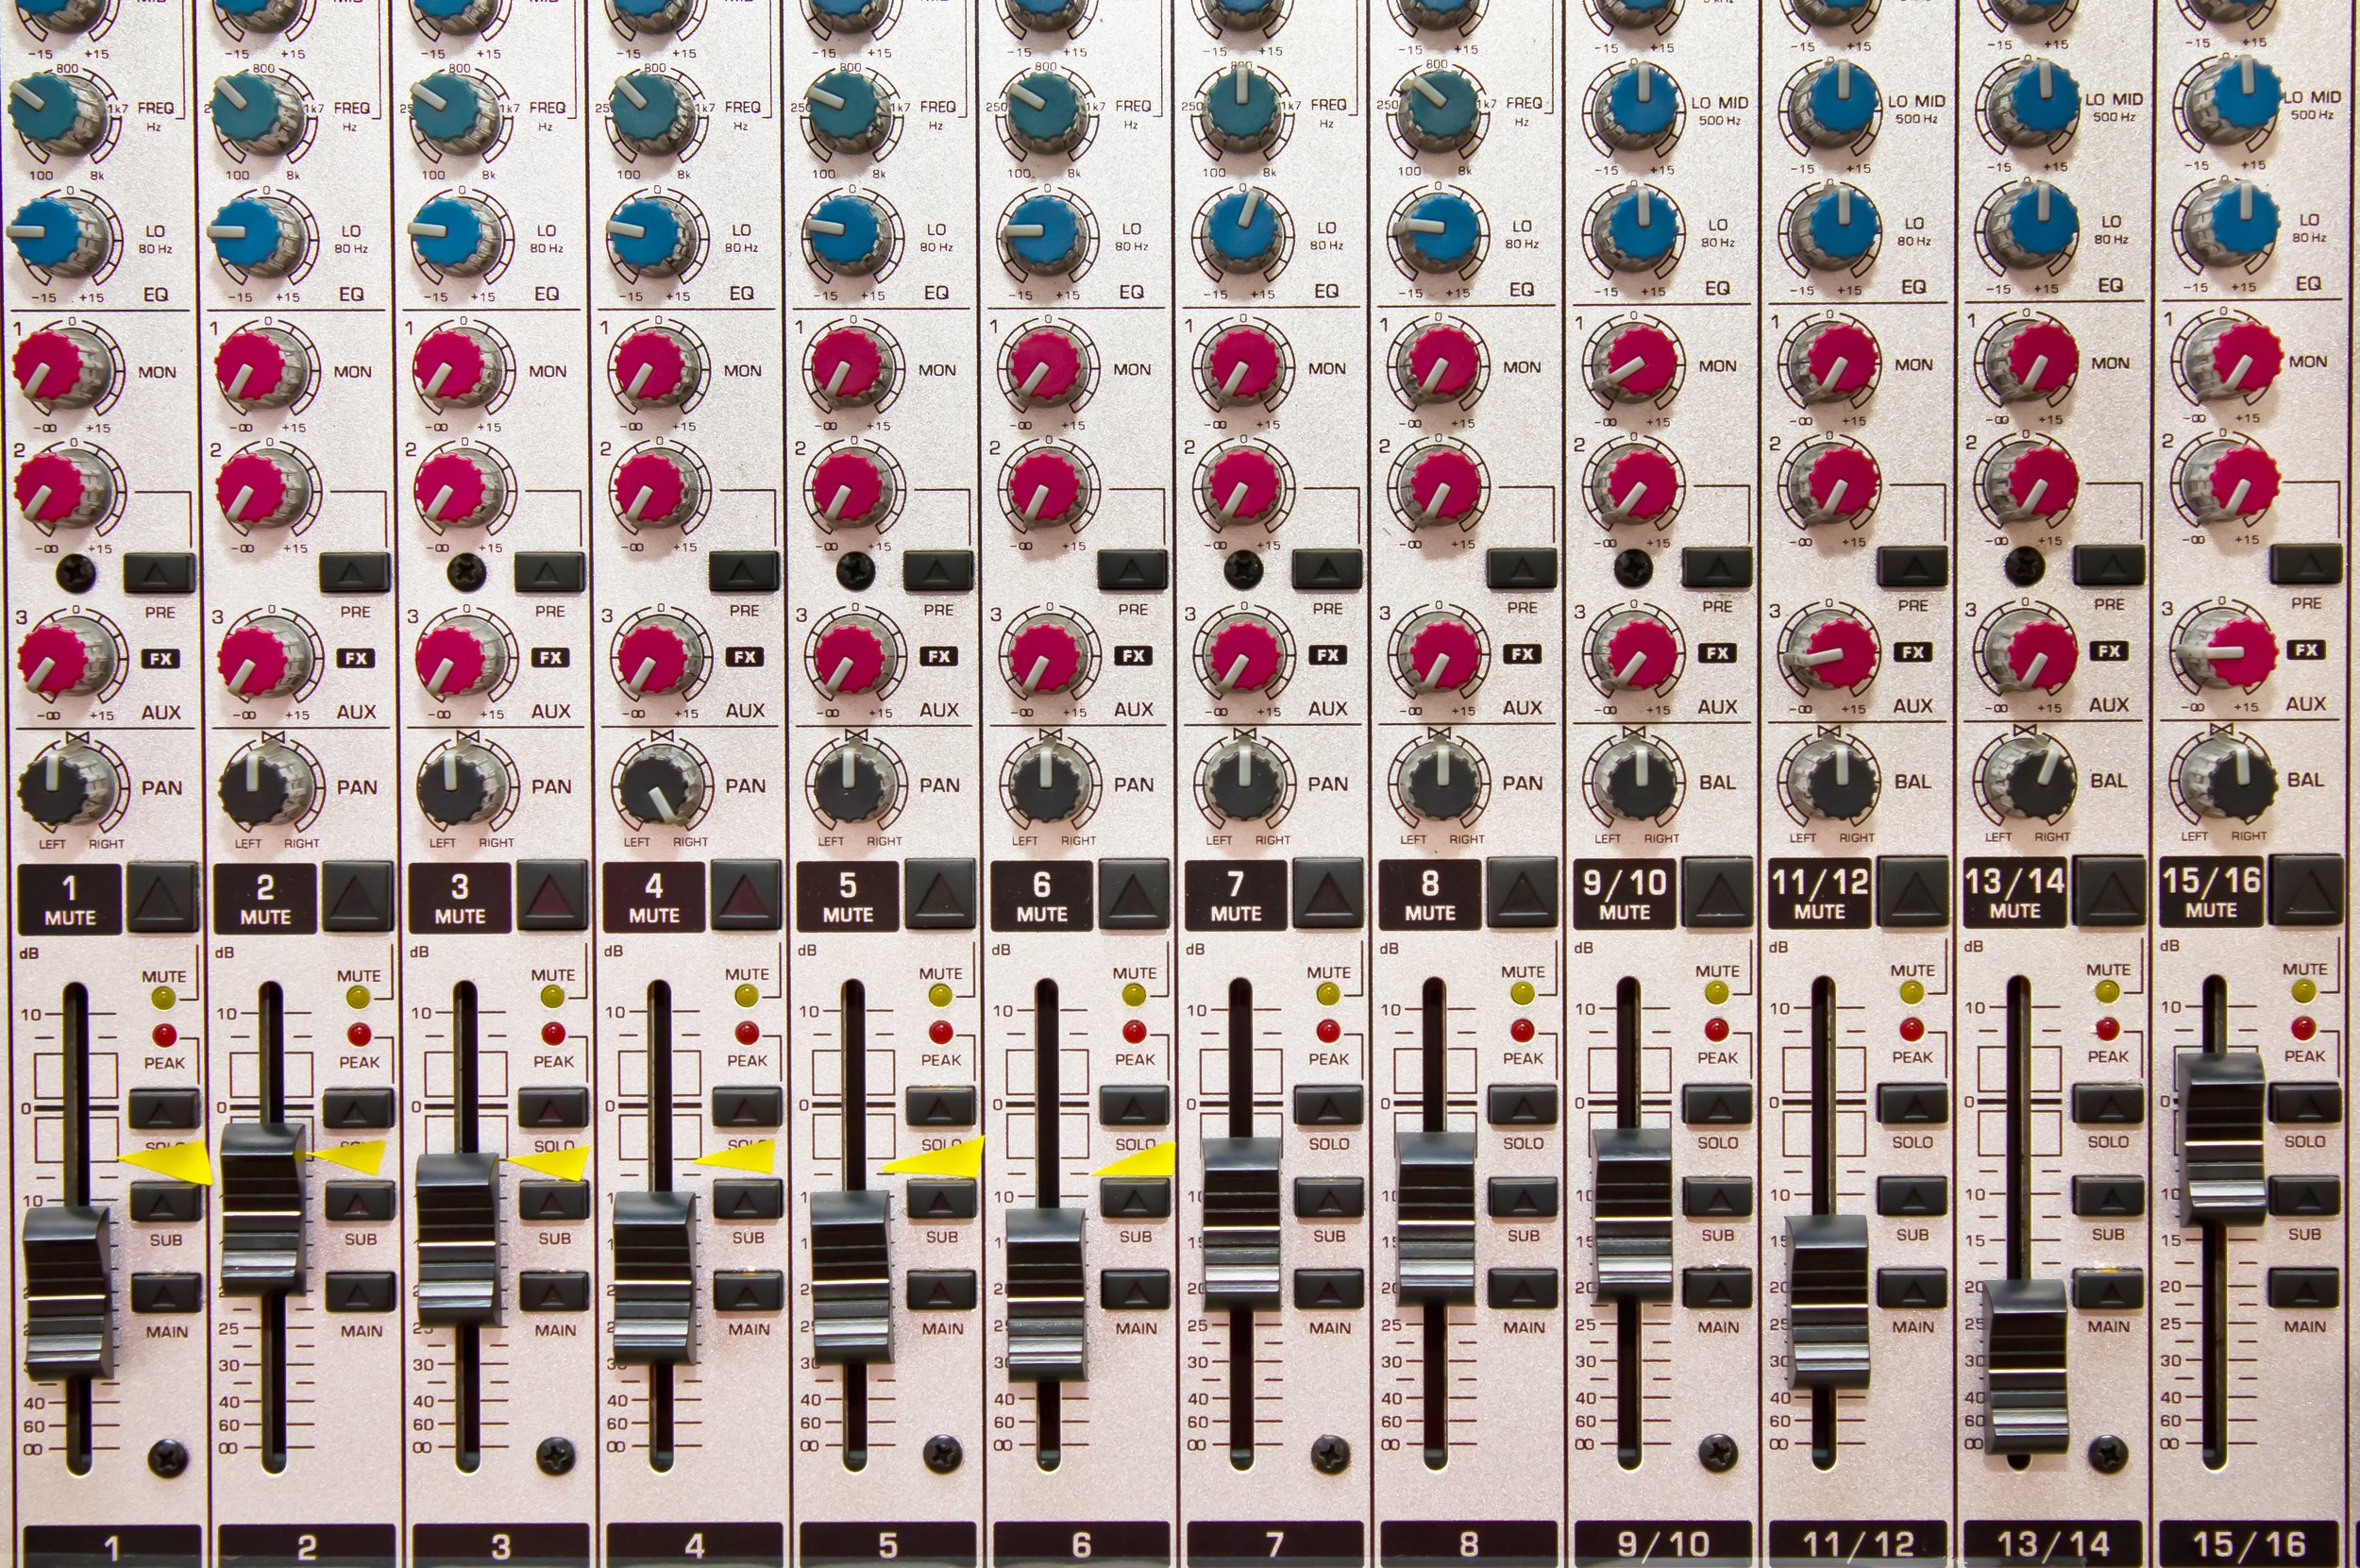 046722359-detail-music-mixing-console.jpg